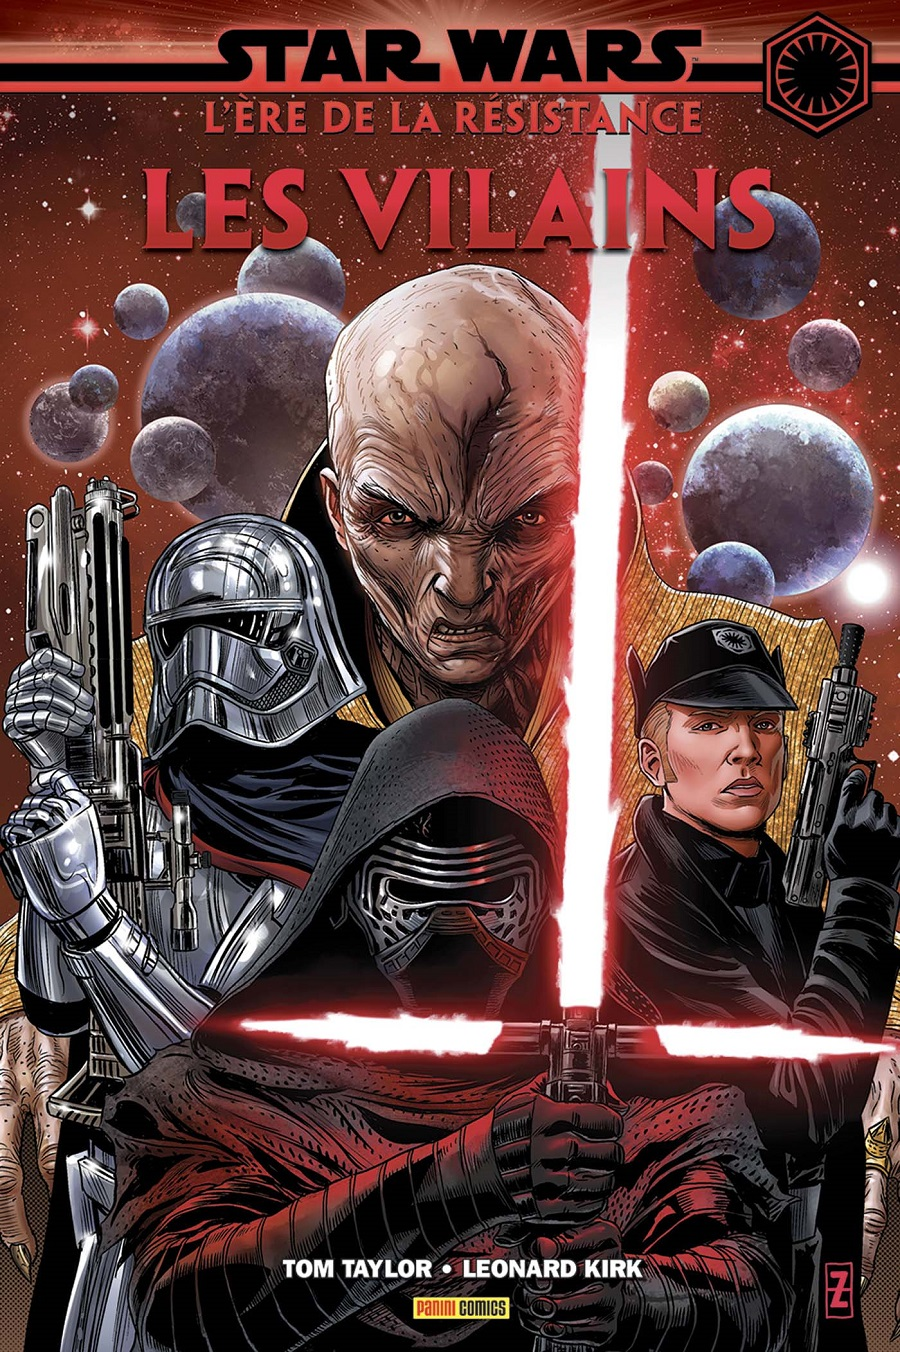 LE COIN STAR WARS (Avec spoilers ) - Page 40 Ereres11